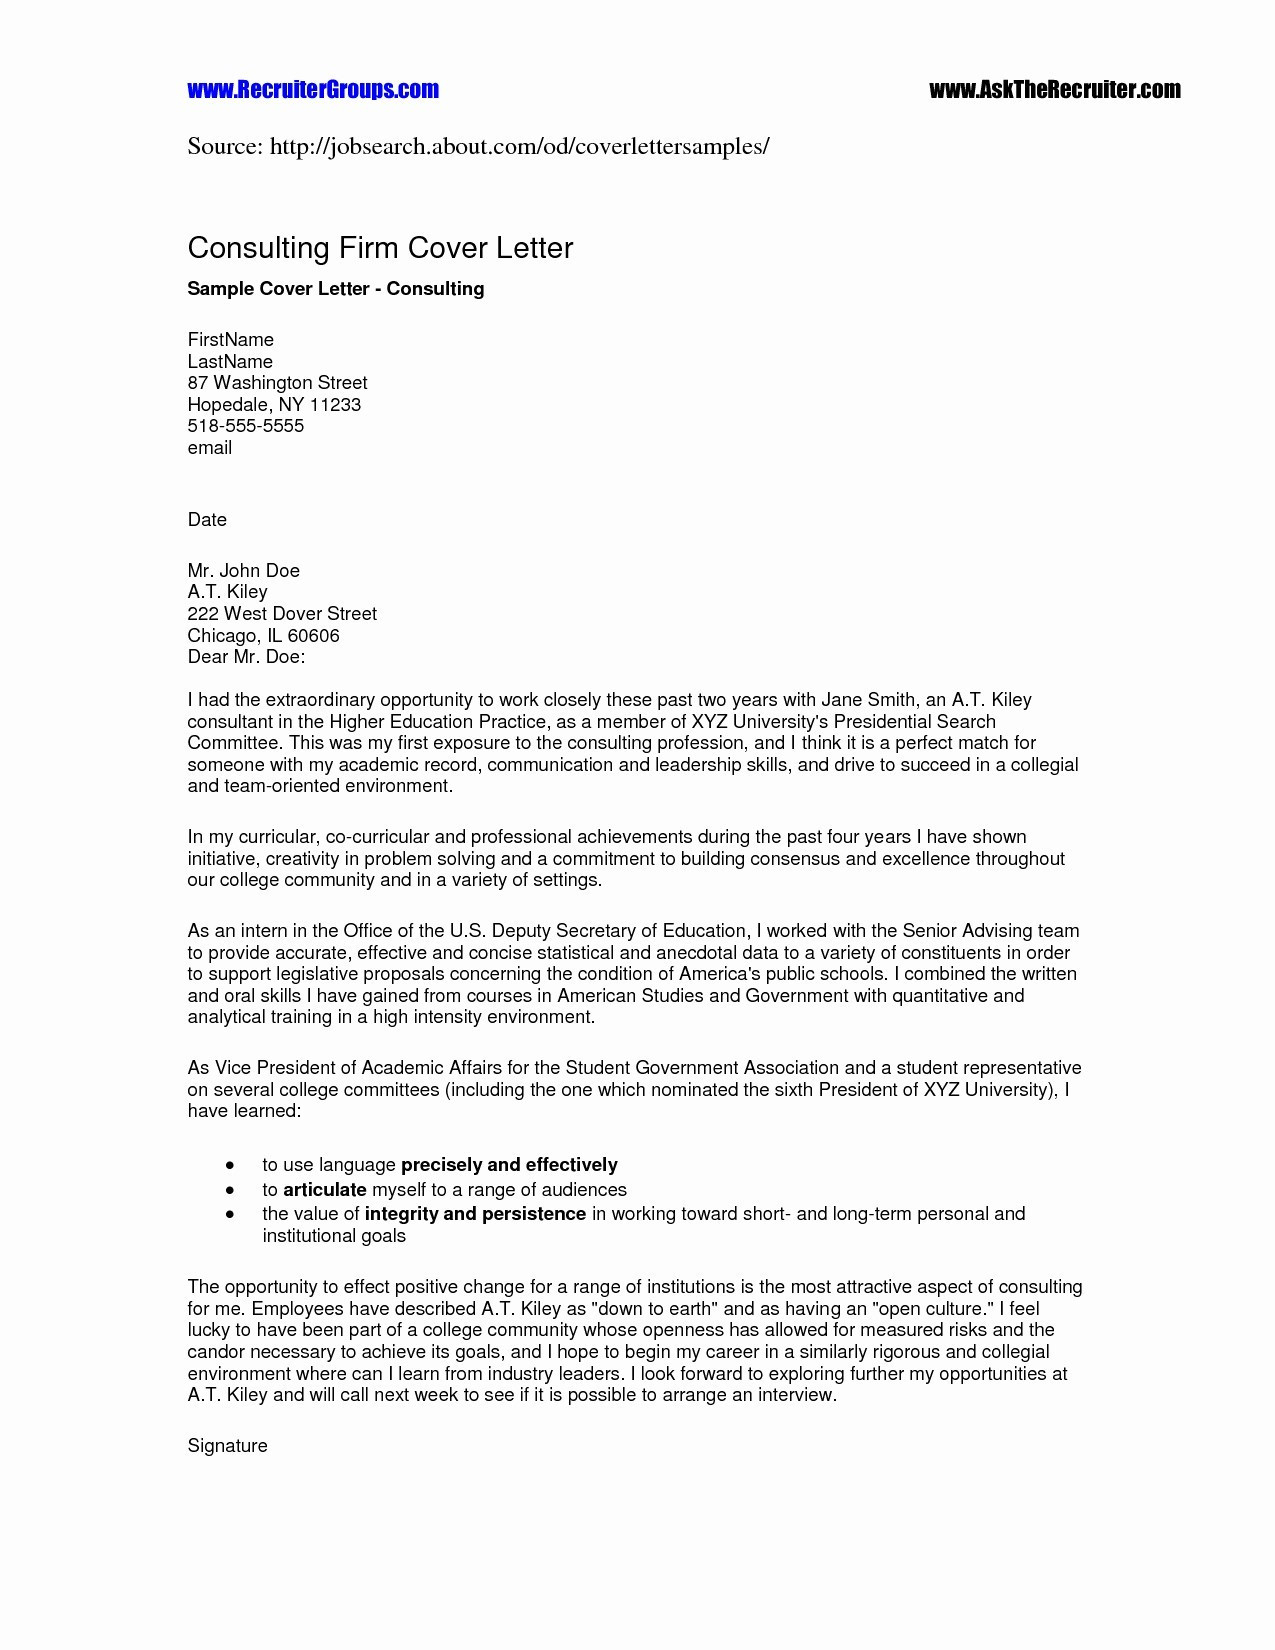 Cover Letter Template for Google Docs - Resume Templates for Google Docs Inspirational Inspirational Free